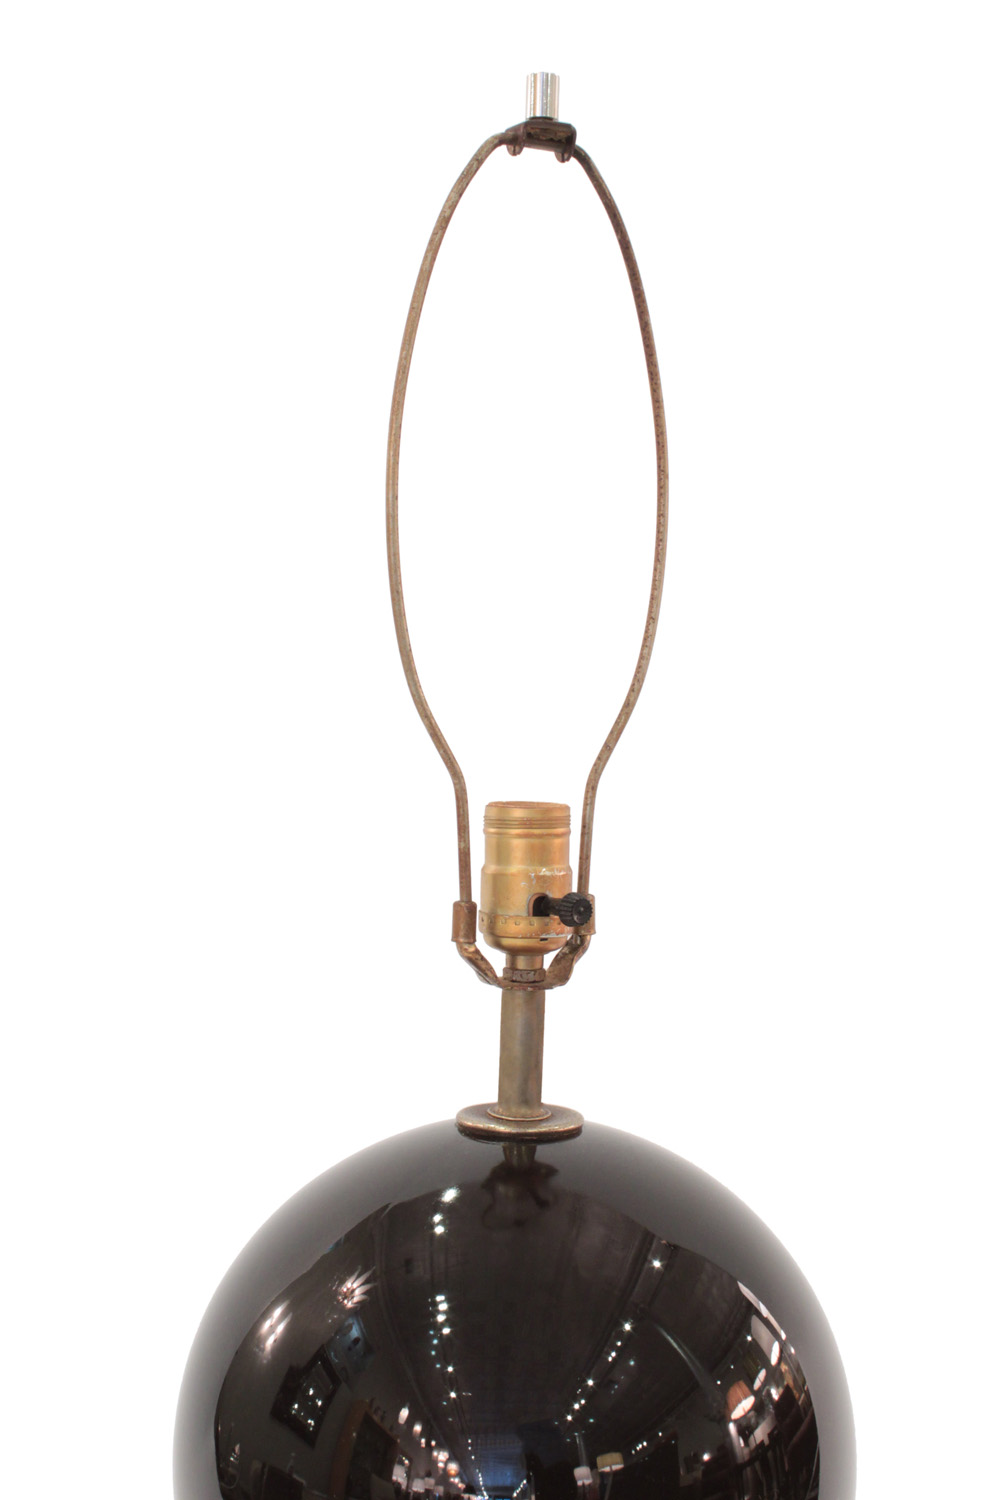 60s 55 lrg brown glass balls tablelamps301 detail1 hires.jpg